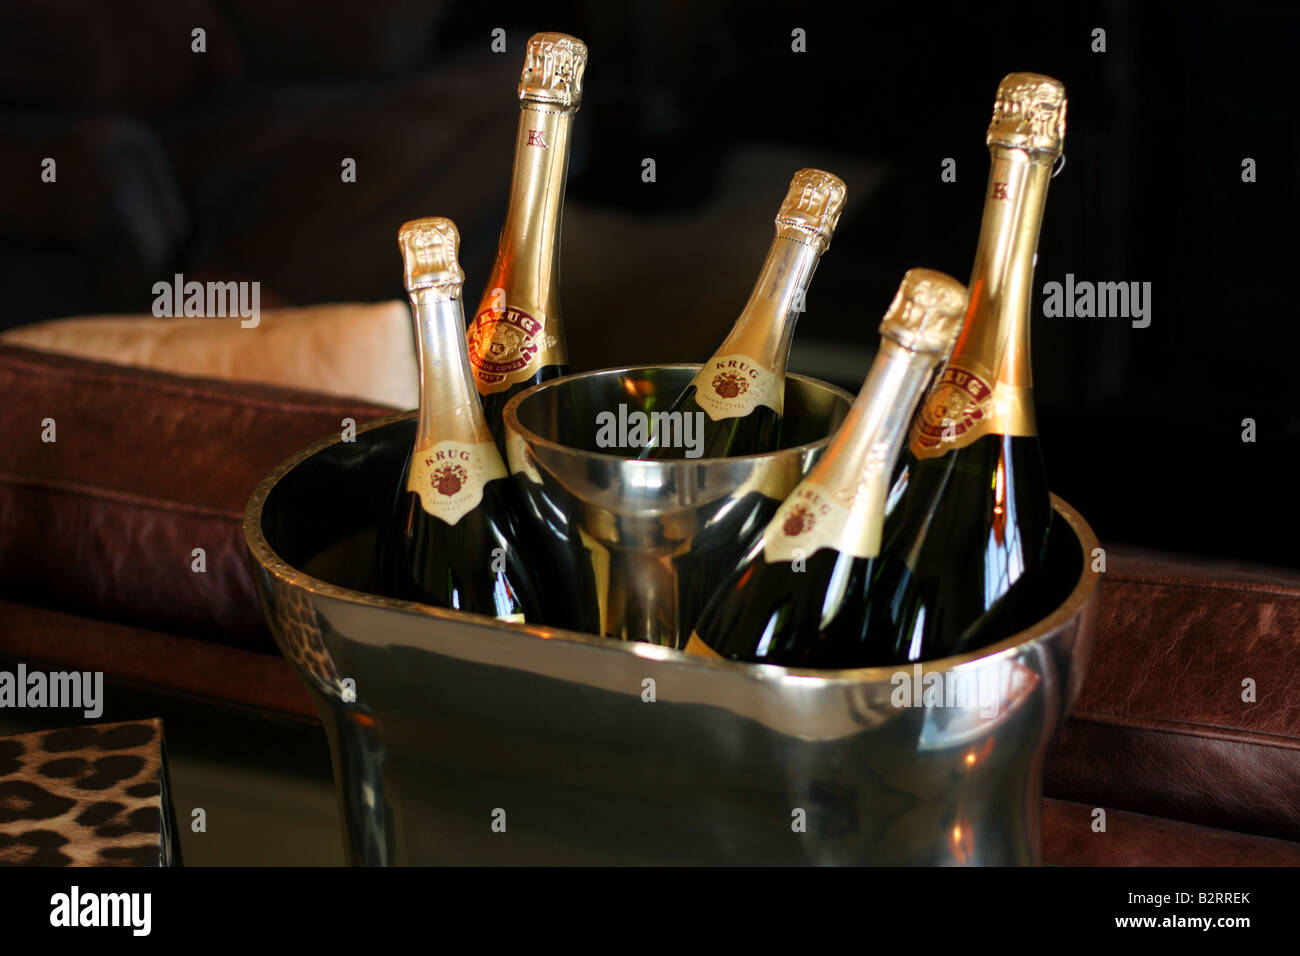 Champaign and Ice Bucket - Stock Image